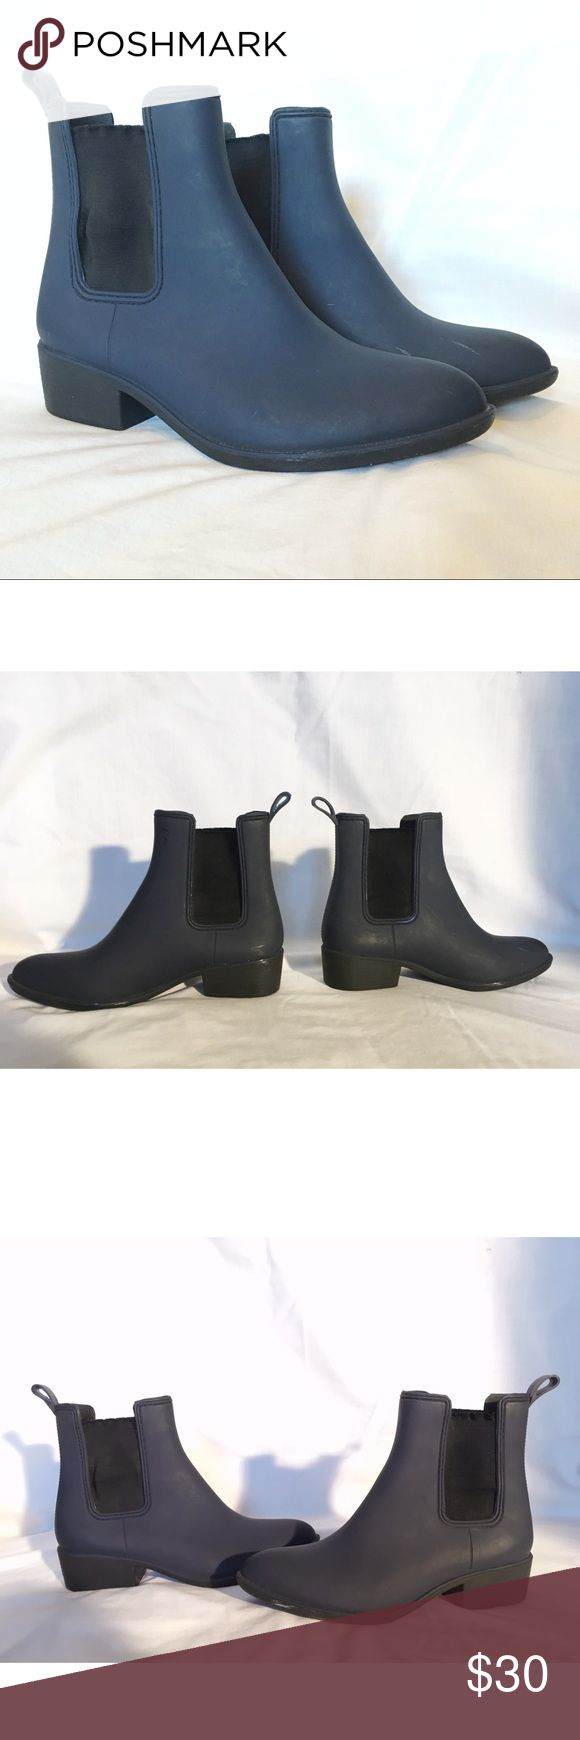 Jeffery Campbell Stormy rain boot Dark blue and black Chelsea style rain boot with a pointed toe. Elastic sides. Pull on. Size 10 but they run small. Great condition with only a few marks from wear. The last photo shows ink from a barcode, but it's not noticeable when worn. The ink came on them when bought from urban. Jeffrey Campbell Shoes Winter & Rain Boots